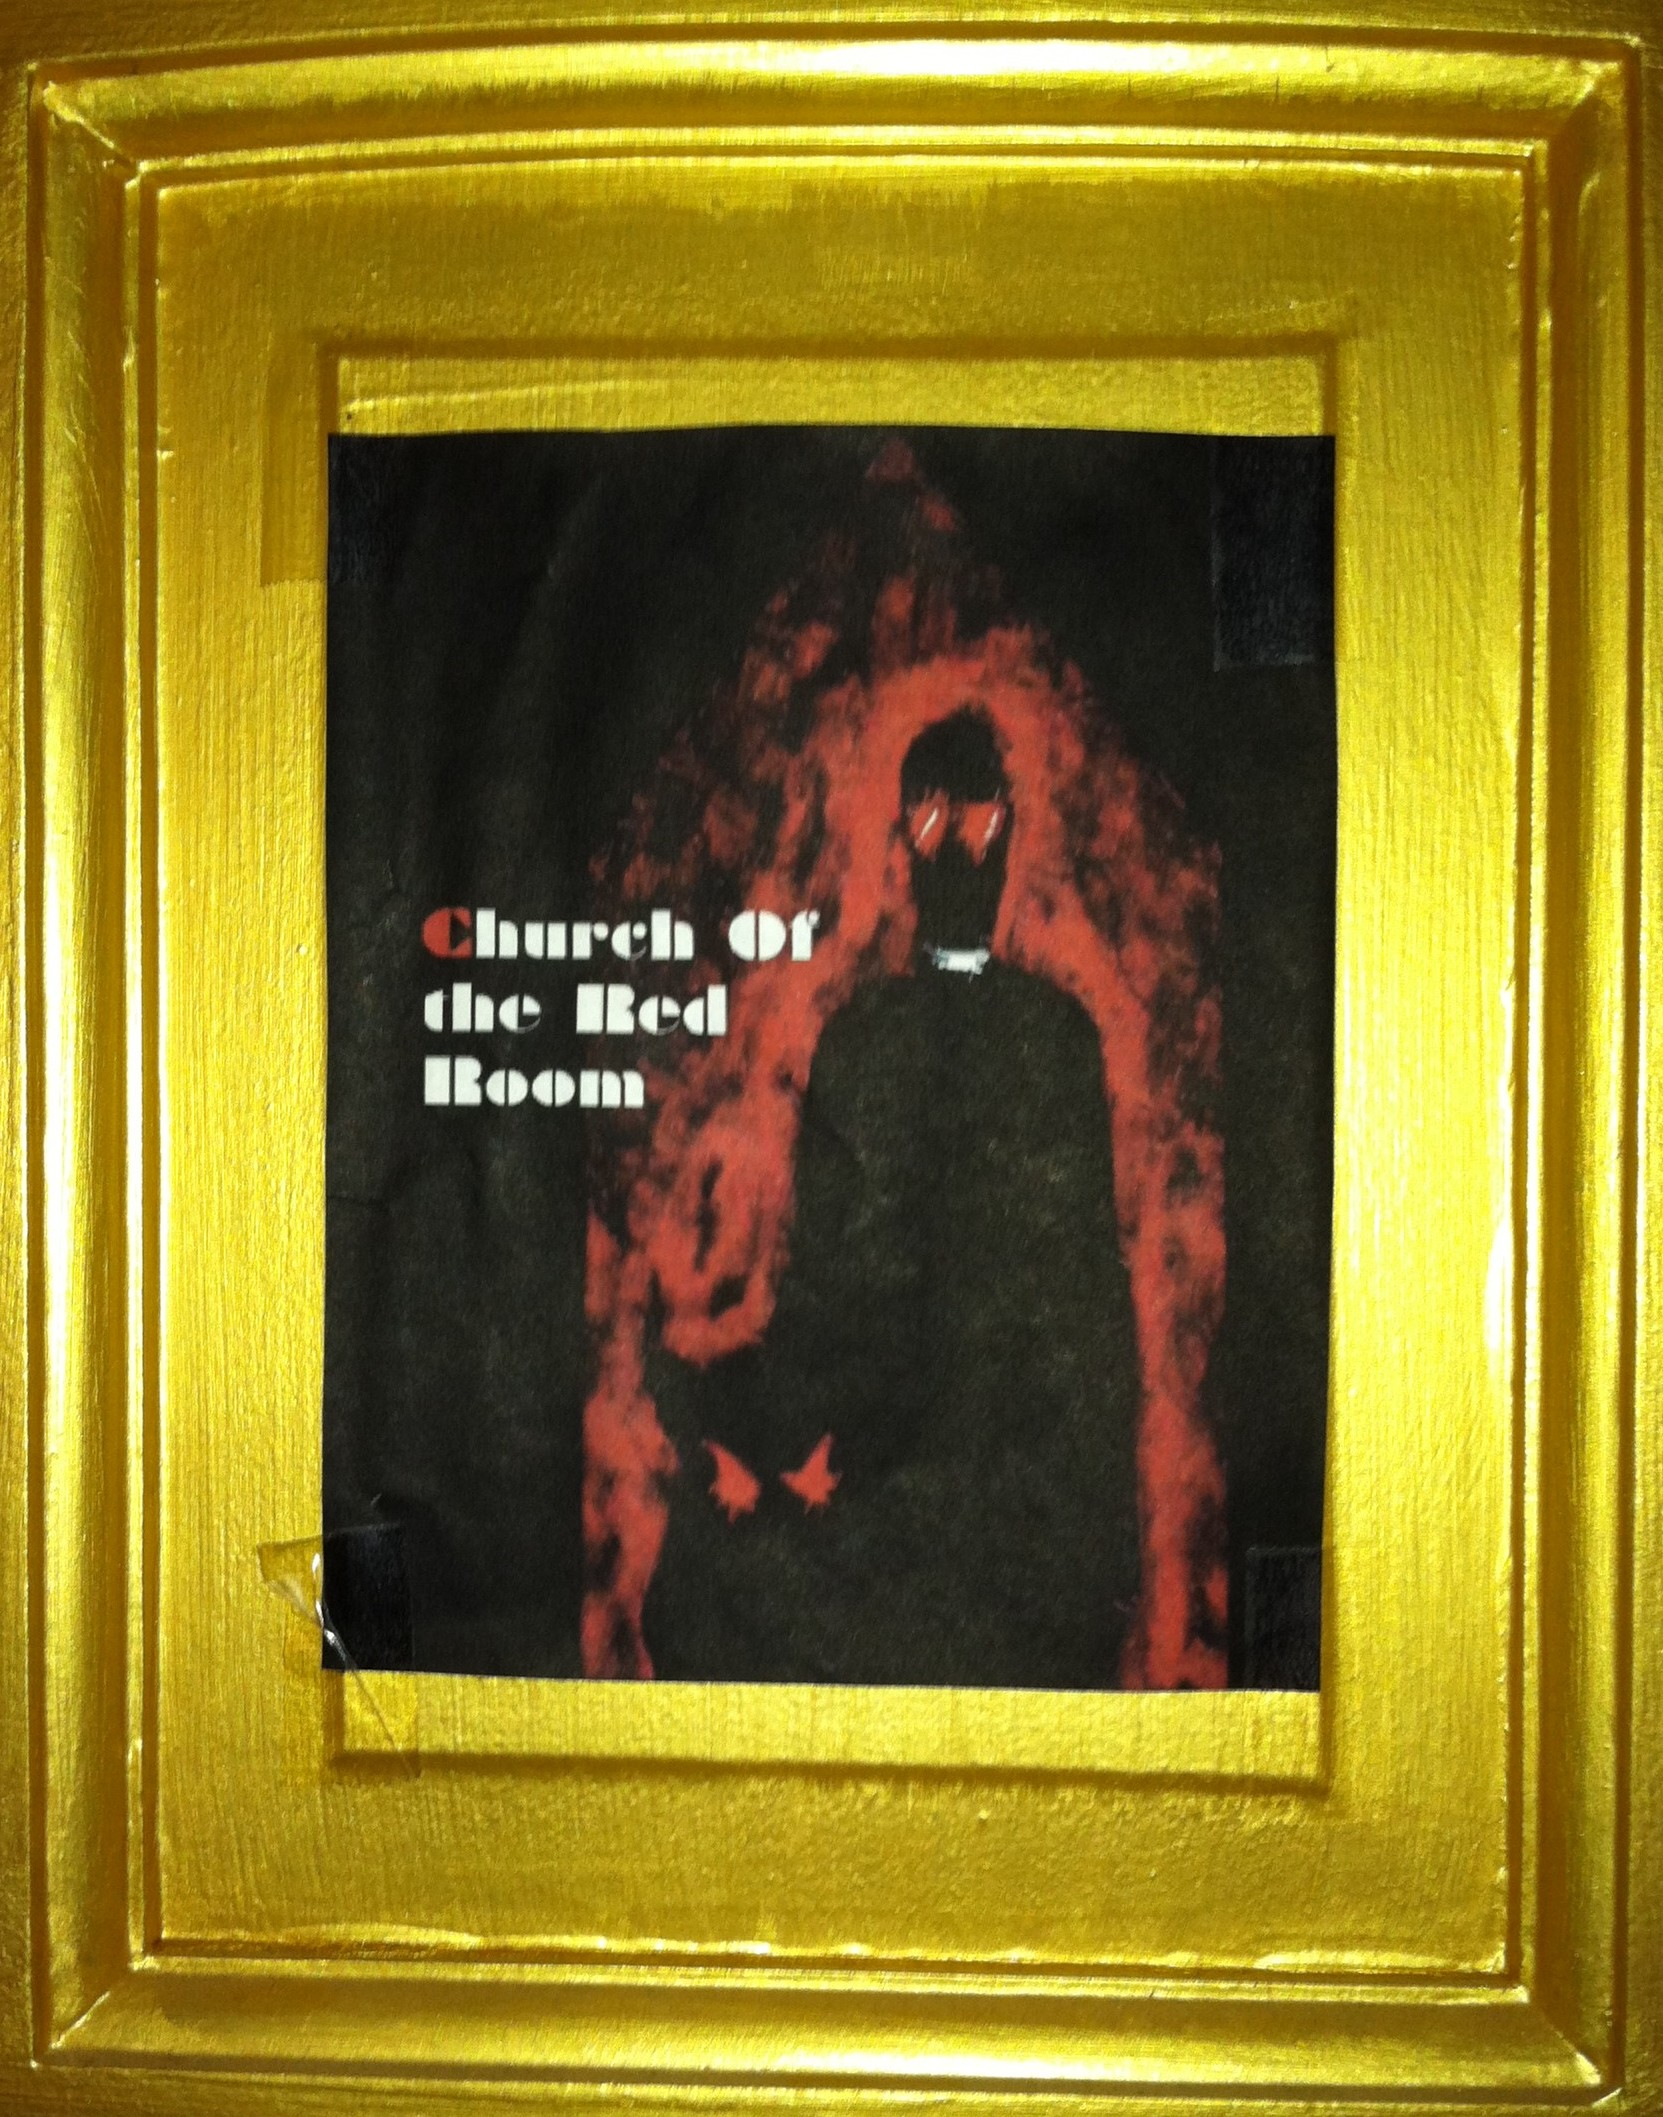 /uploads2/158073_3_16_2016_5_00_33_AM_-_Copy of Church of The Red Room.jpg